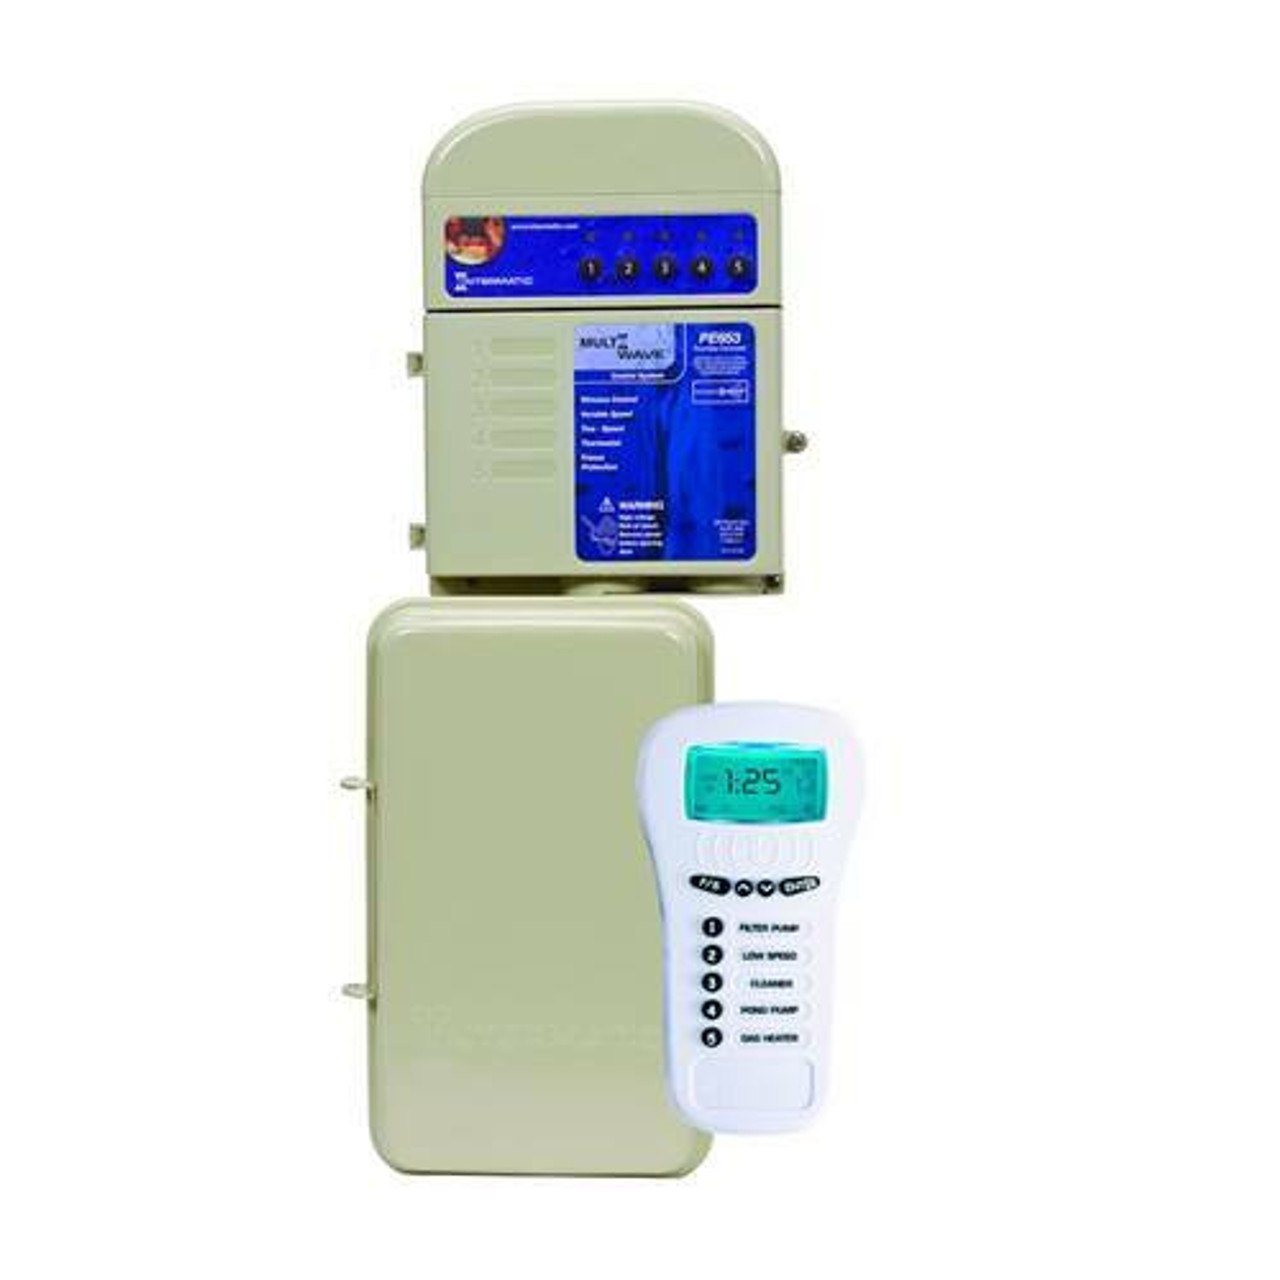 Intermatic MultiWave Wireless Control System with Timer; 120/240 VAC, 5 W